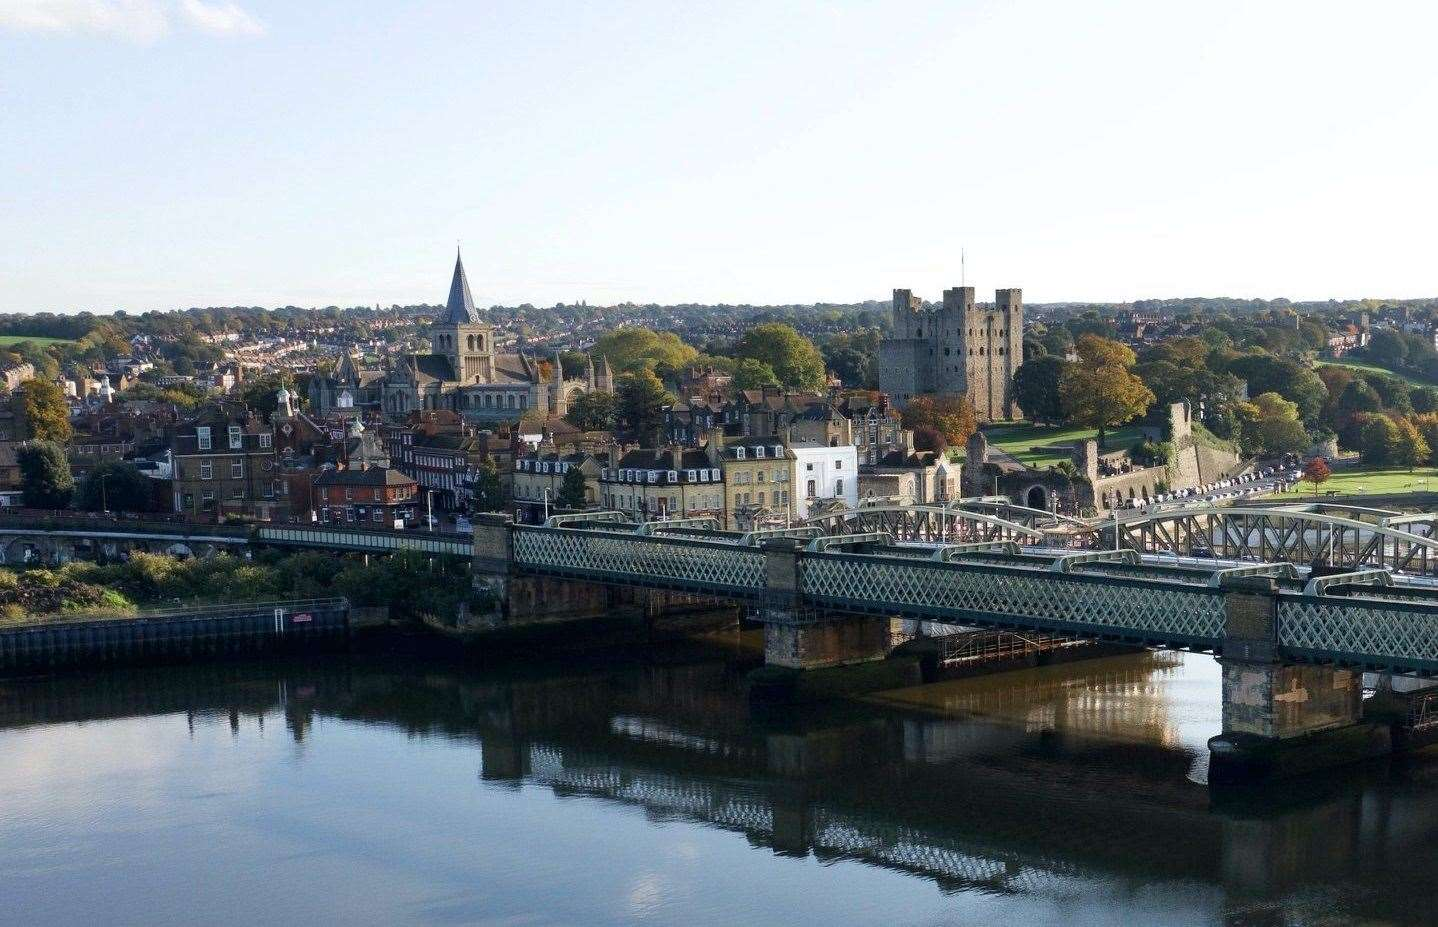 An aerial photo of Rochester captured by Geoff Watkins of Aerial Imaging South East